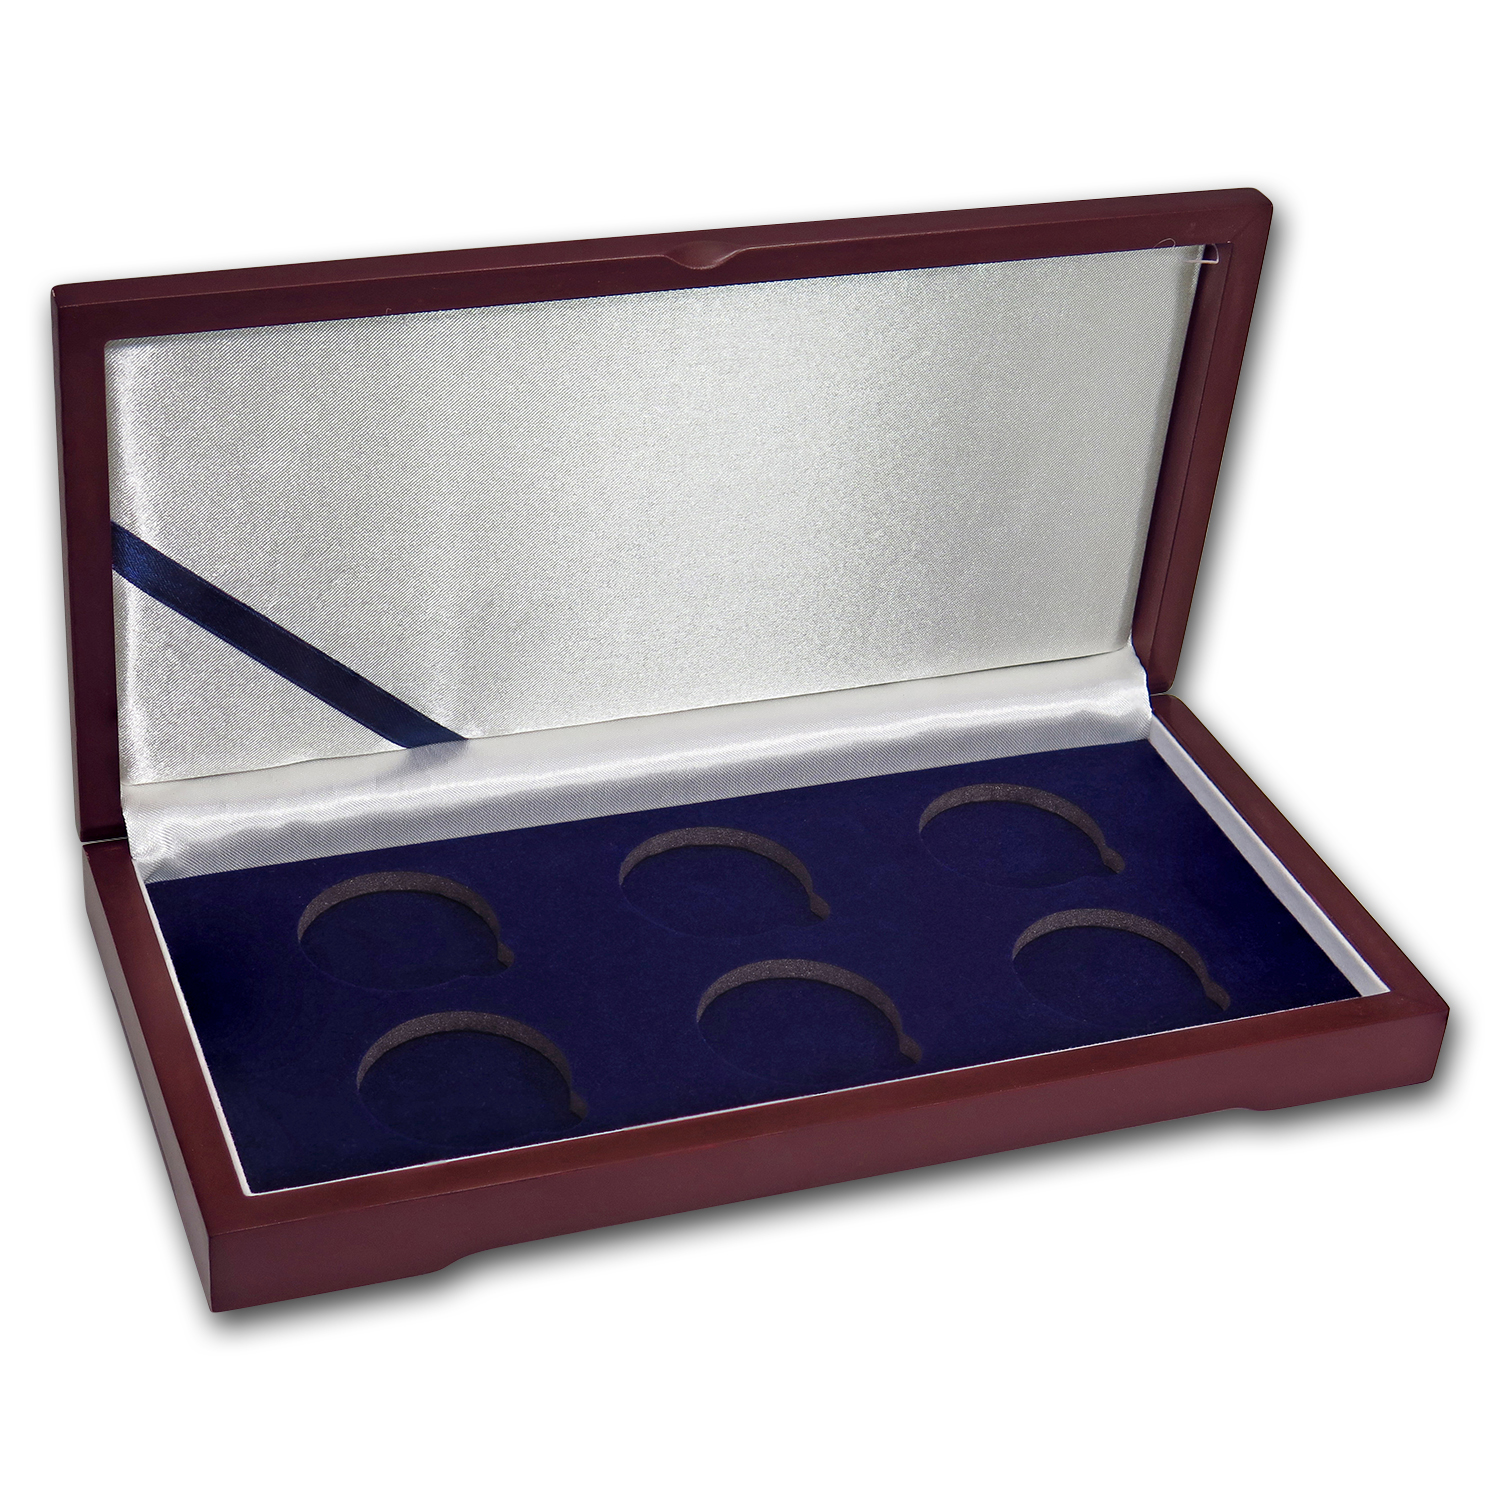 6 Coin Wood Presentation Box - Air-Tite Capsules (H-Style)